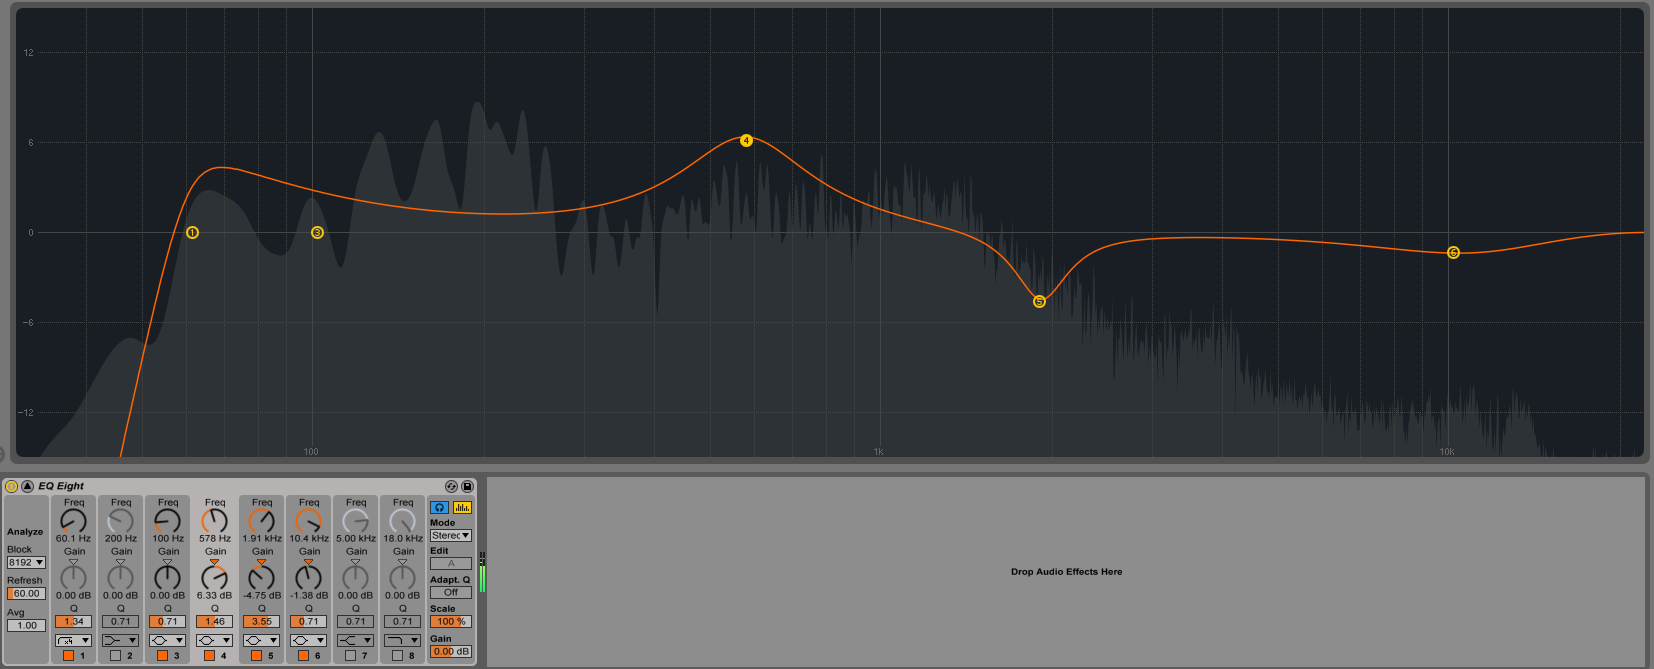 Redesigned EQ8 in Live 9